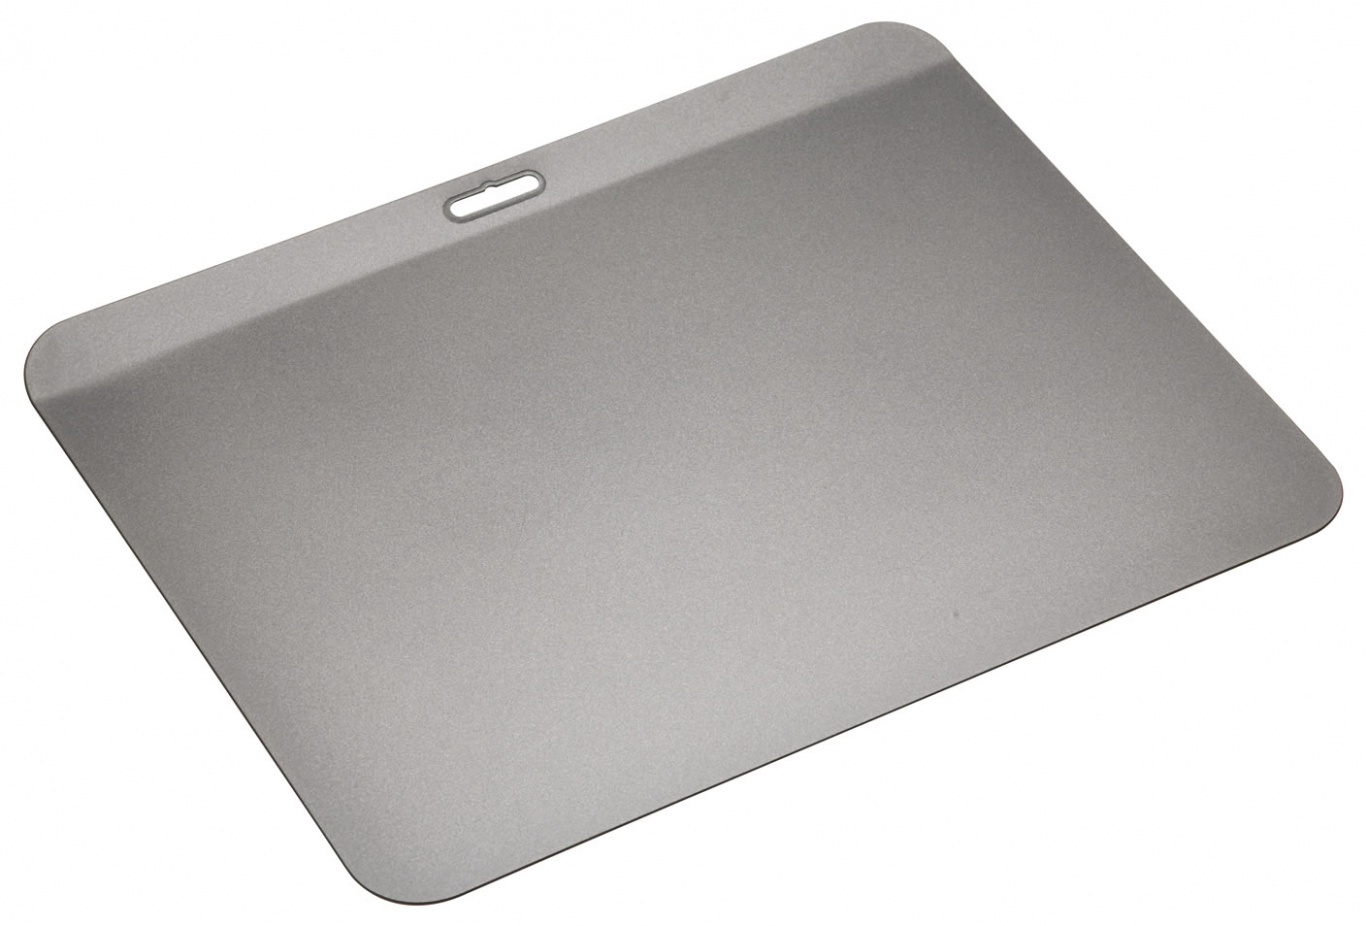 Image of Non Stick Double Layered Baking Sheet 35cm x 28cm